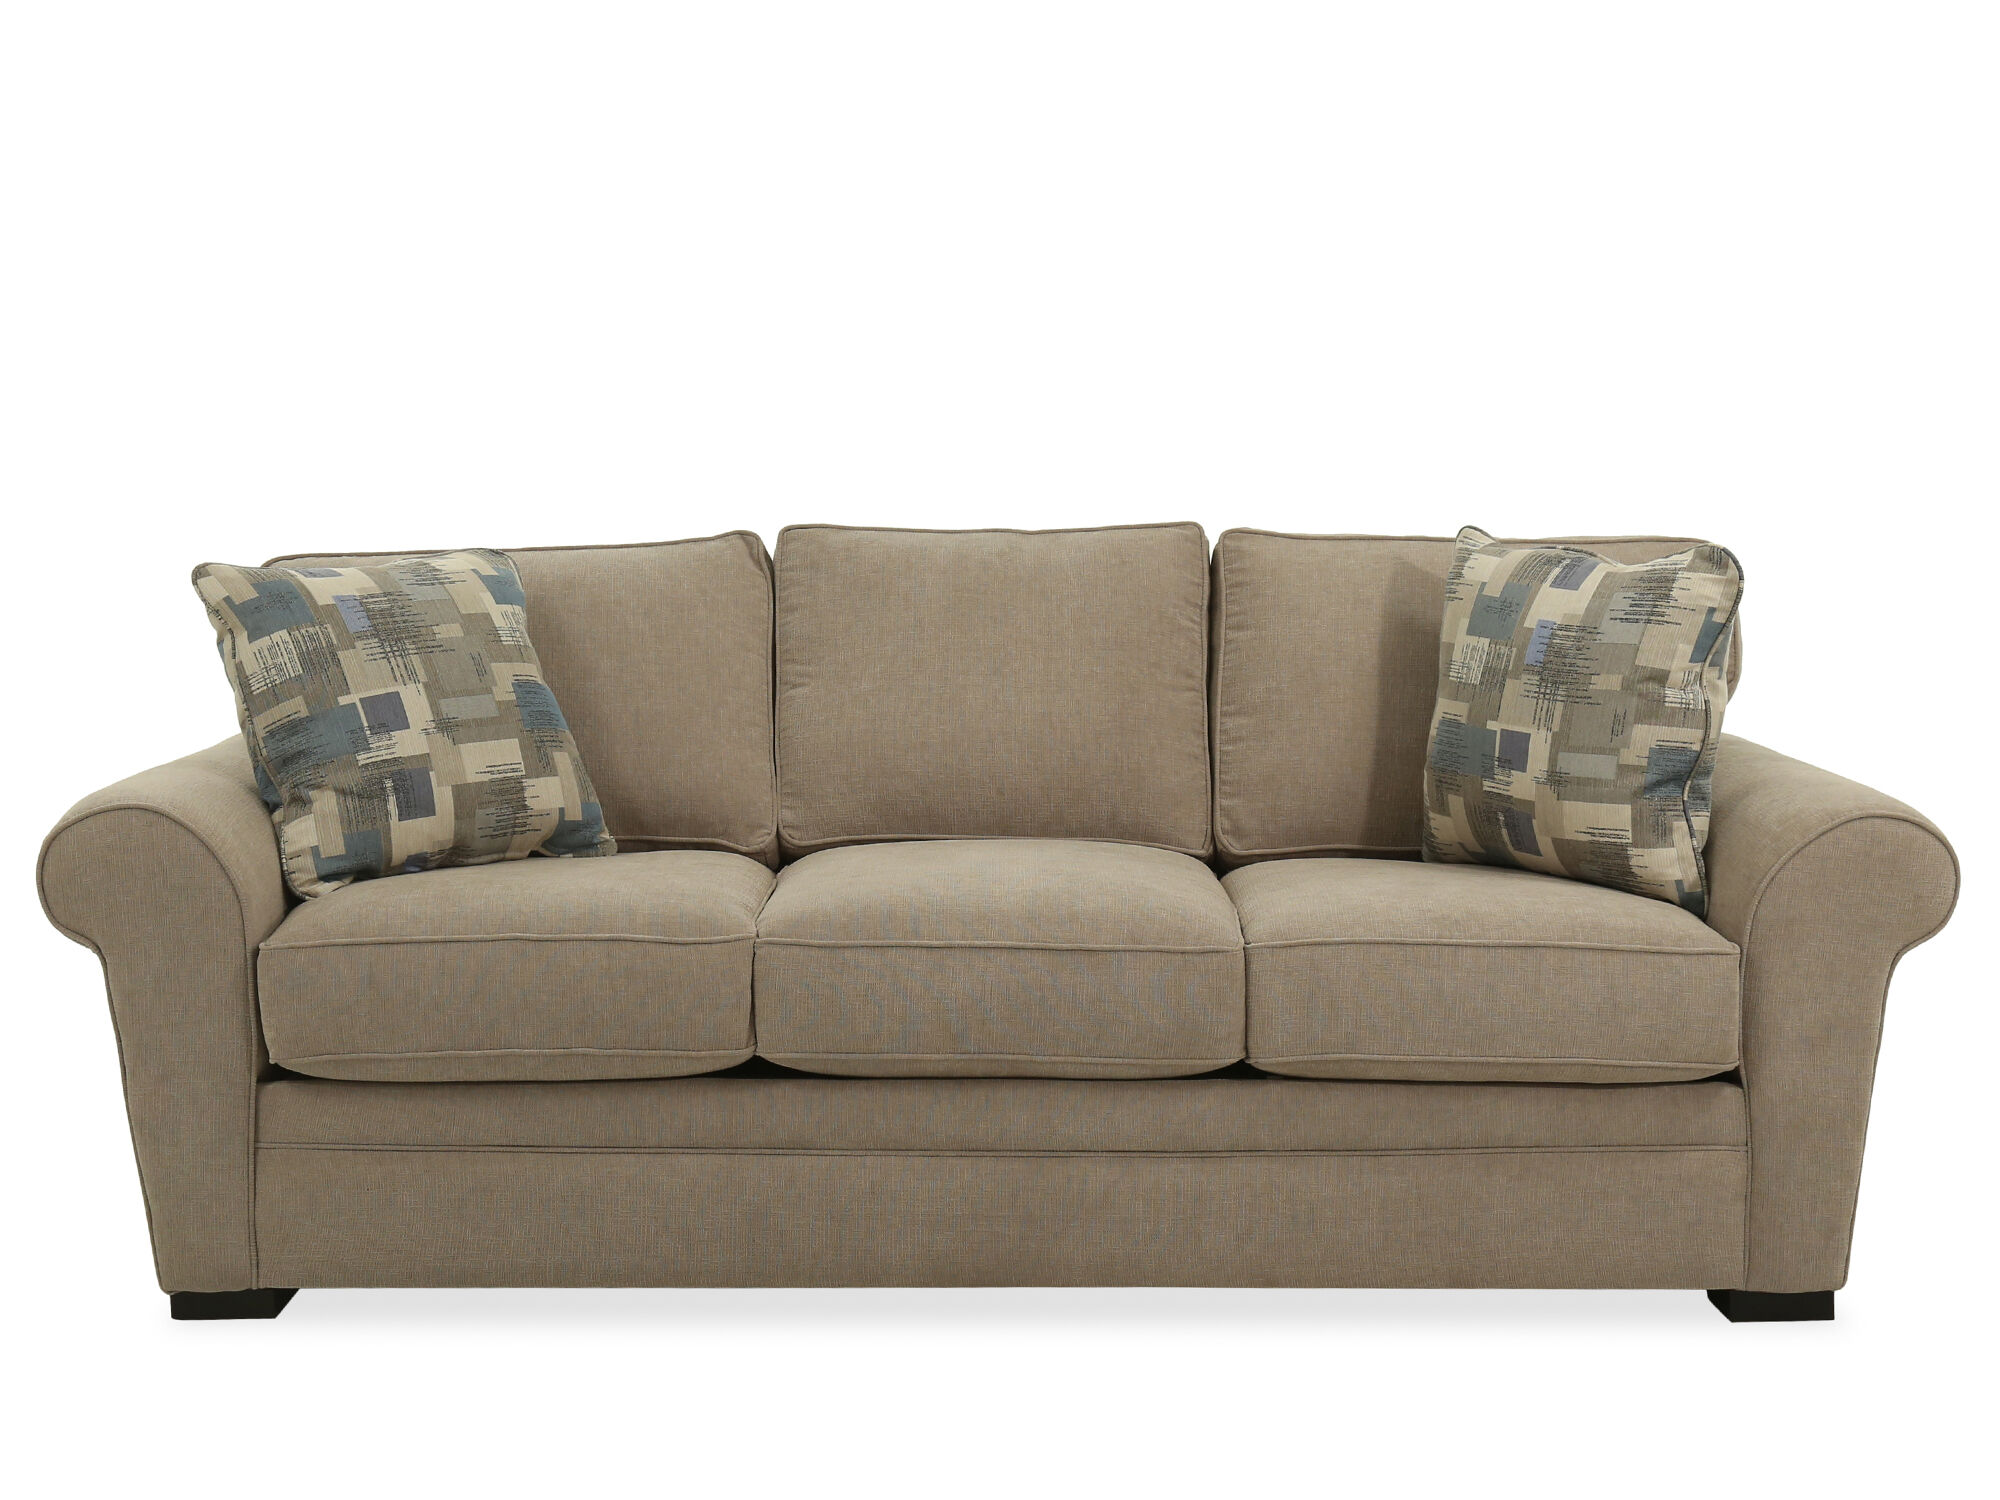 Lounge Couch Casual Queen Sleeper Sofa In Light Brown | Mathis Brothers ...